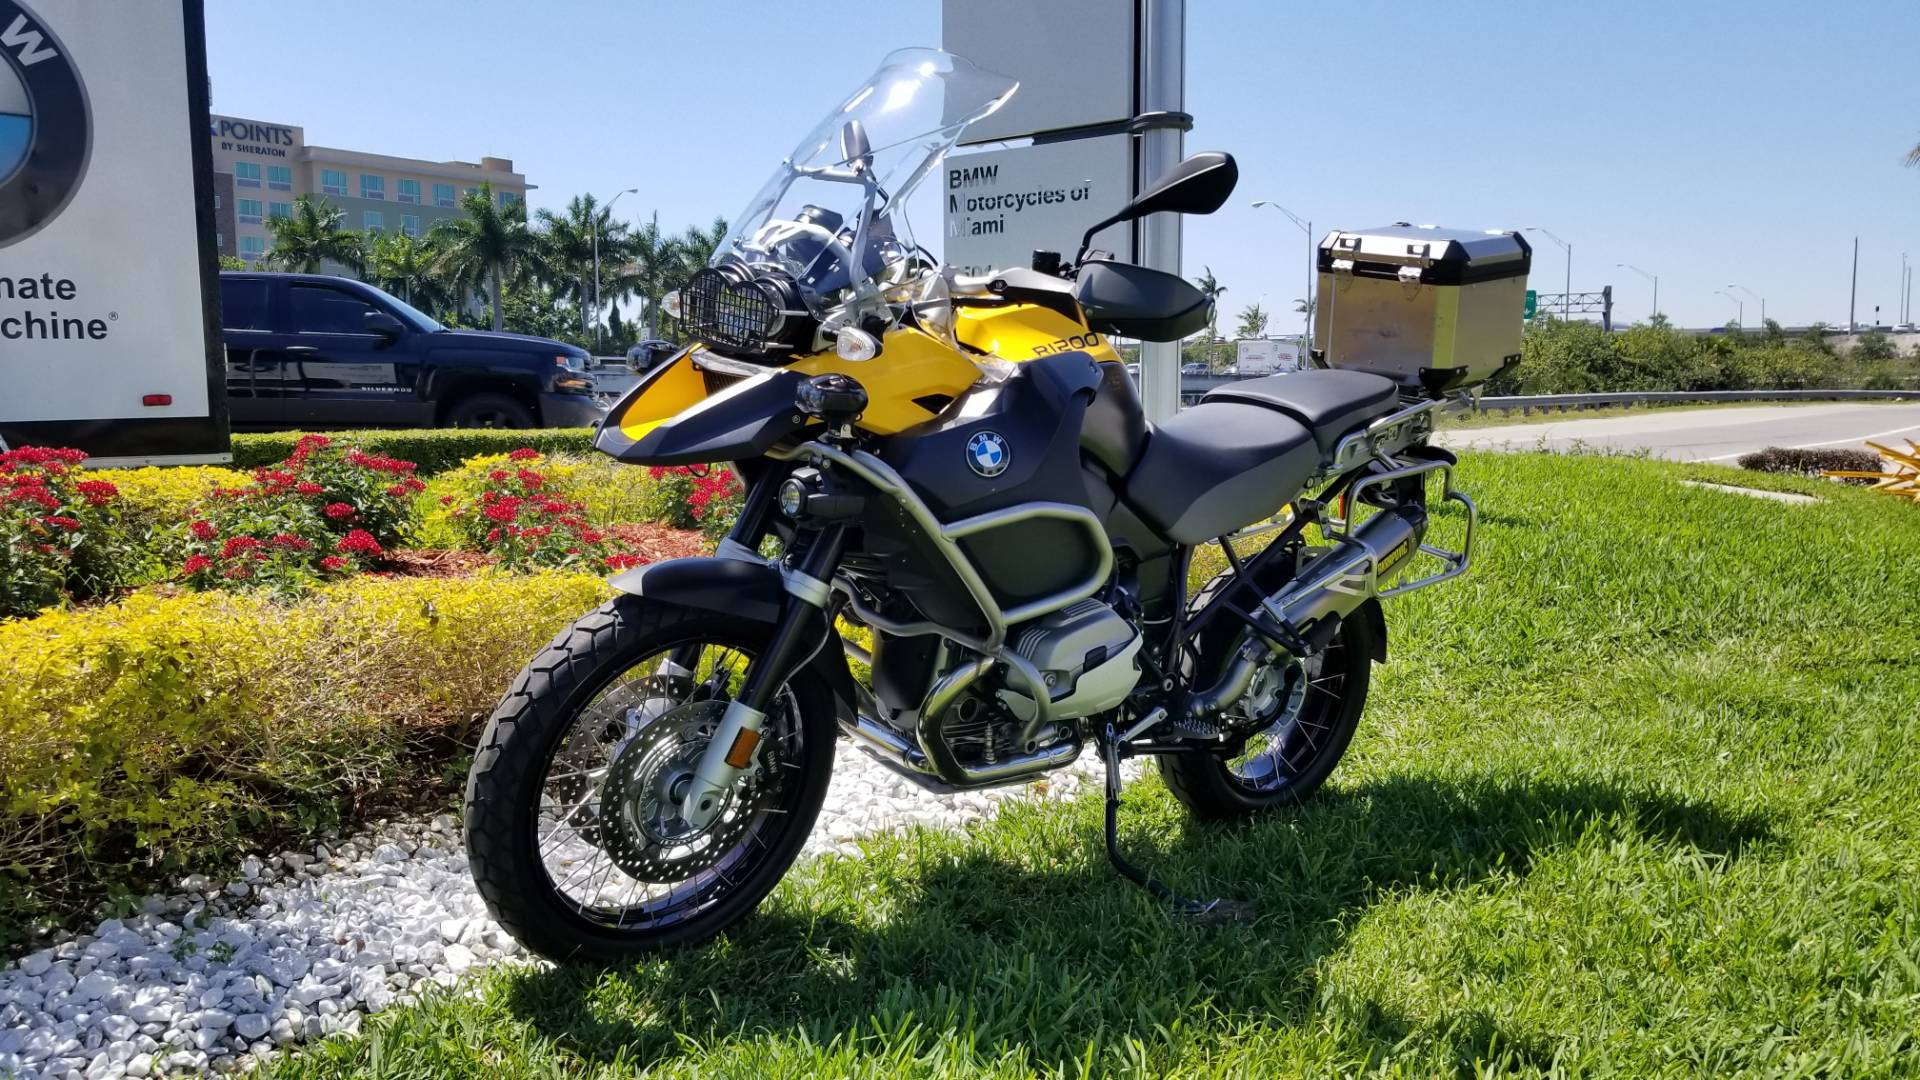 Used 2011 BMW R 1200 GSA For Sale, Pre owned BMW R 1200GSA For Sale, BMW Motorcycle R1200GSA, BMW Motorcycles of Miami, Motorcycles of Miami, Motorcycles Miami - Photo 4